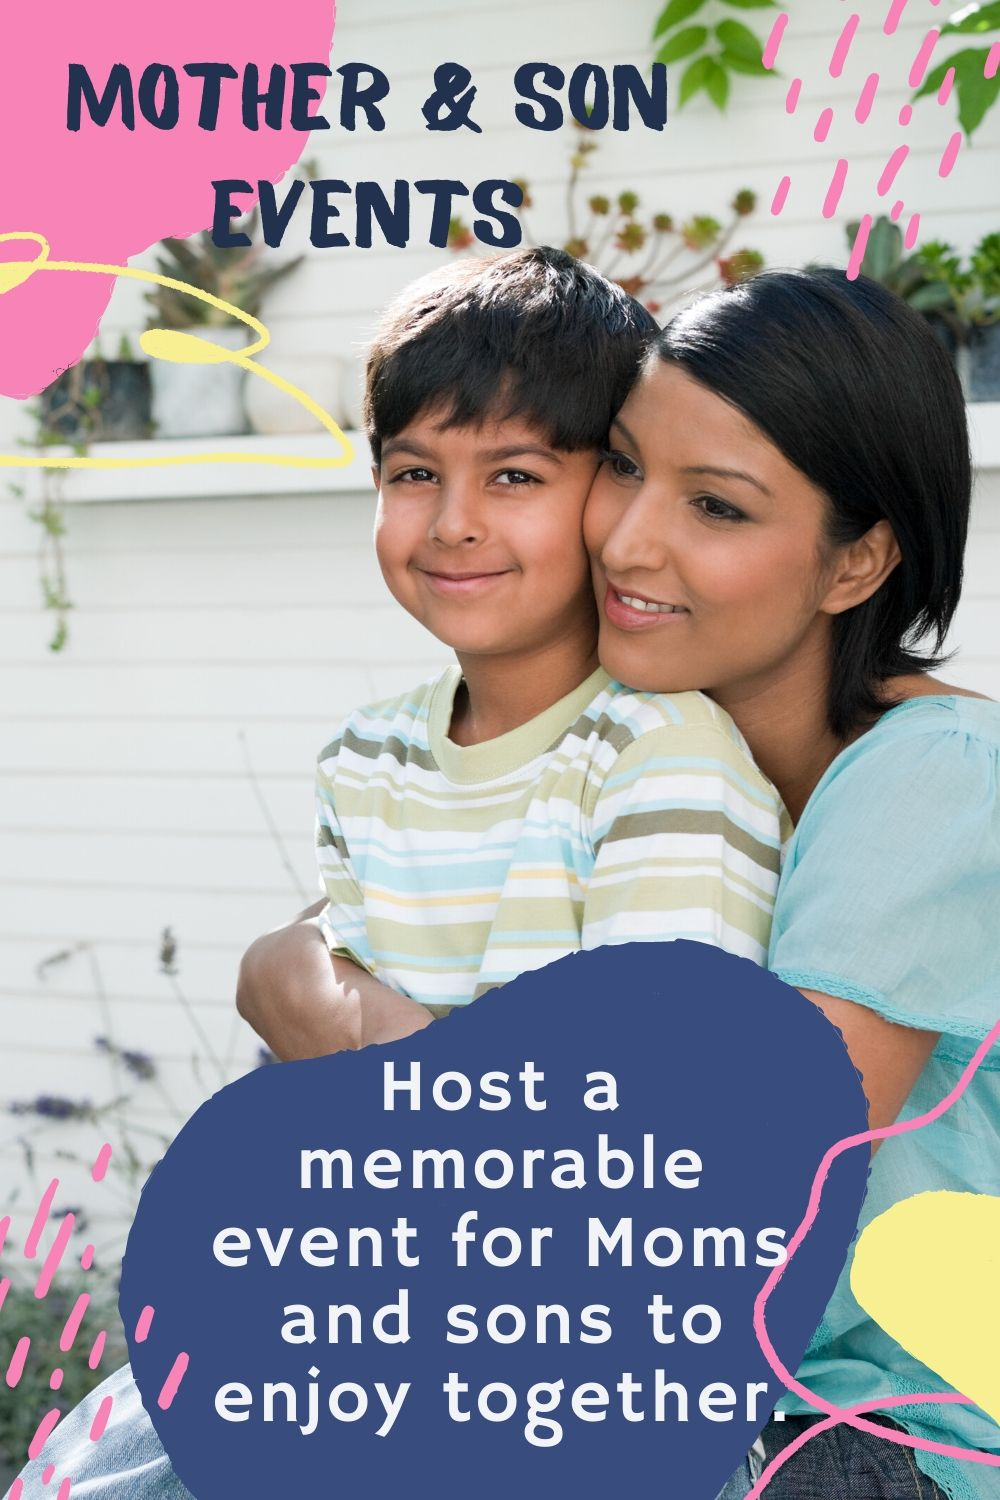 Raise money for your organization by hosting a mother son event